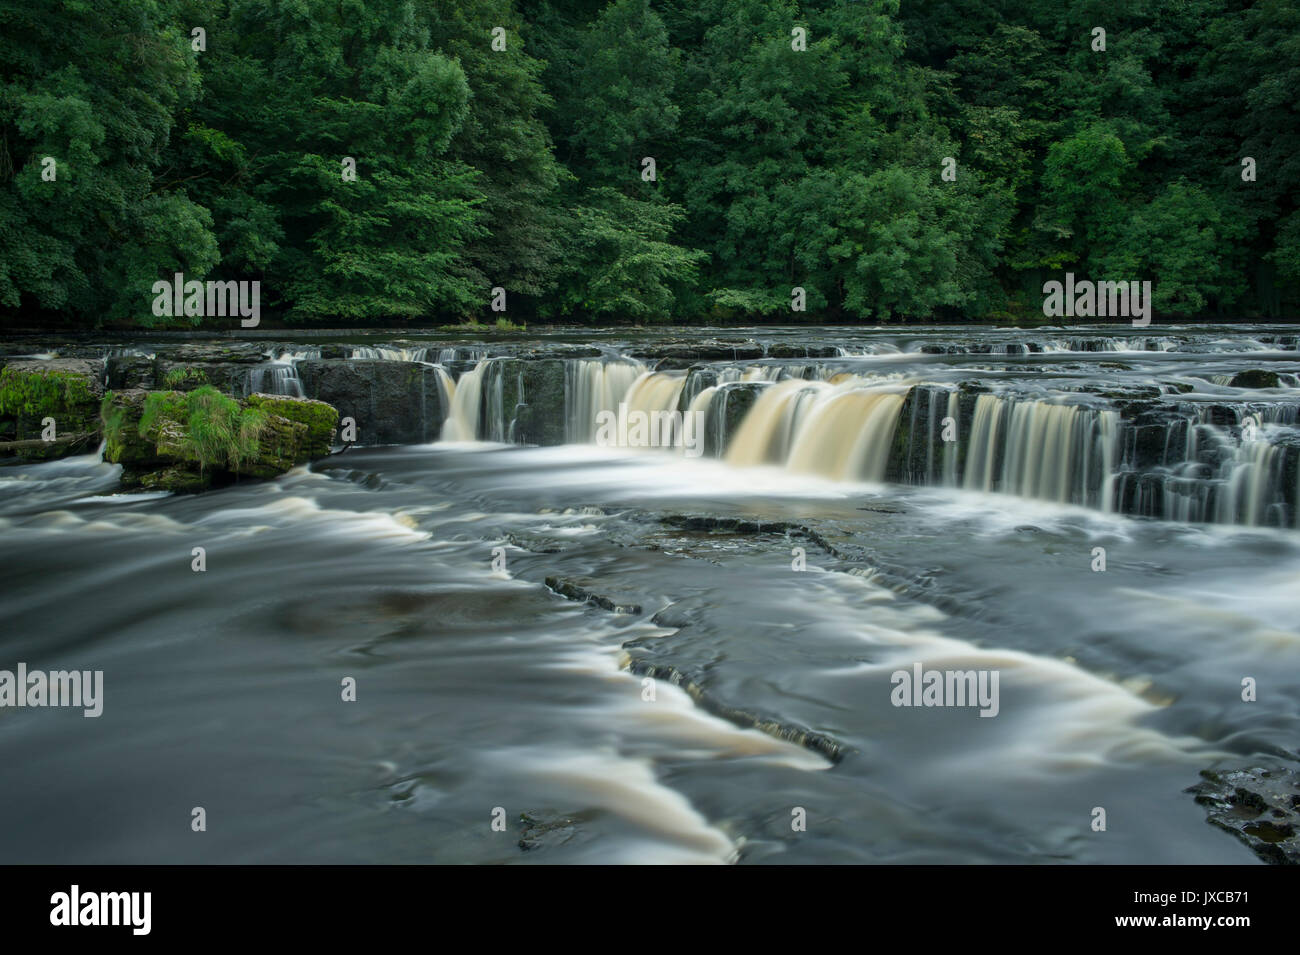 The Famous Aysgarth Falls Waterfall (Upper Falls) near Hawes in The Yorkshire Dales National Park, North Yorkshire, - Stock Image